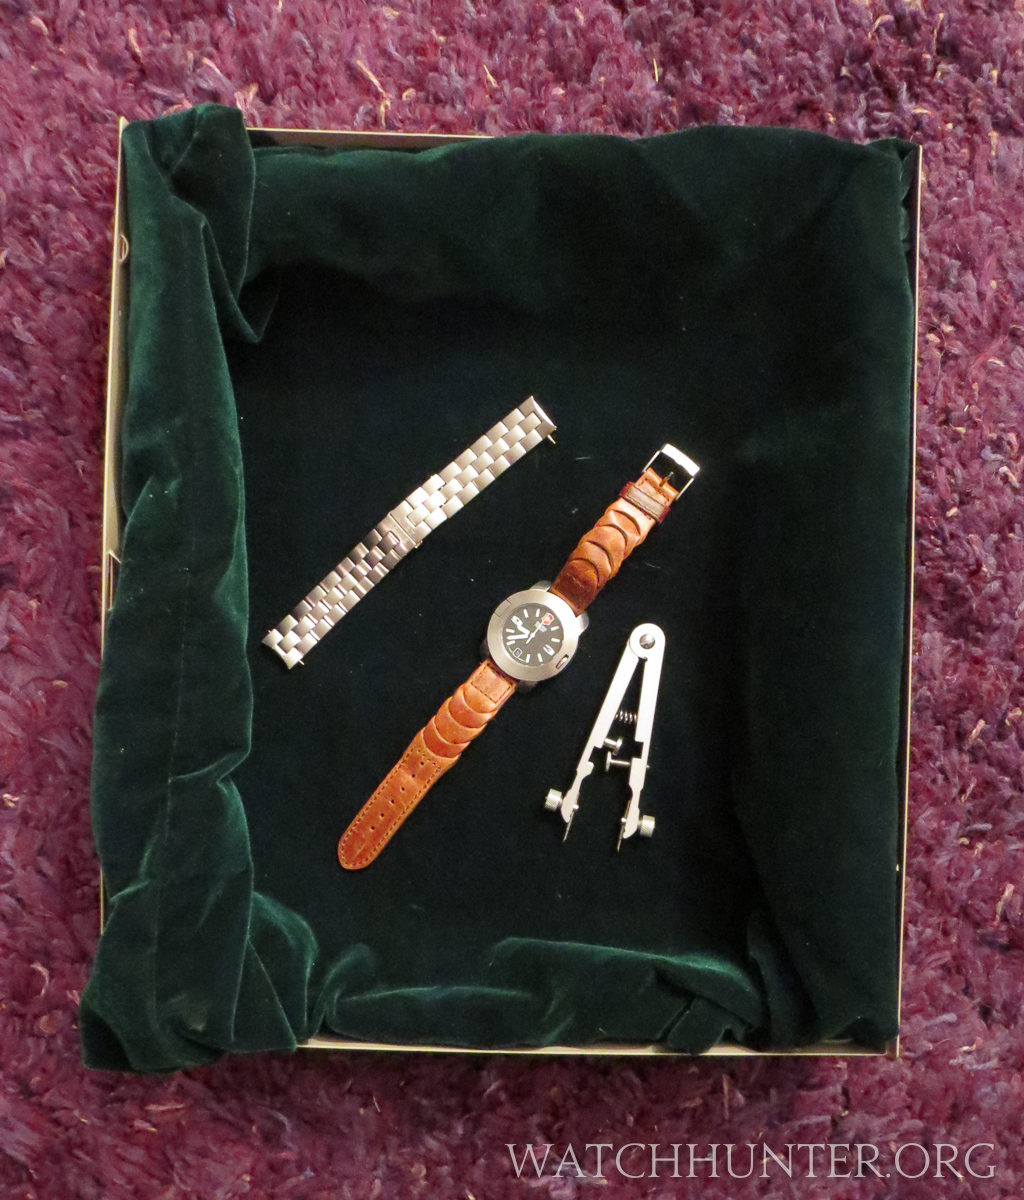 how to change the watch band on a watch